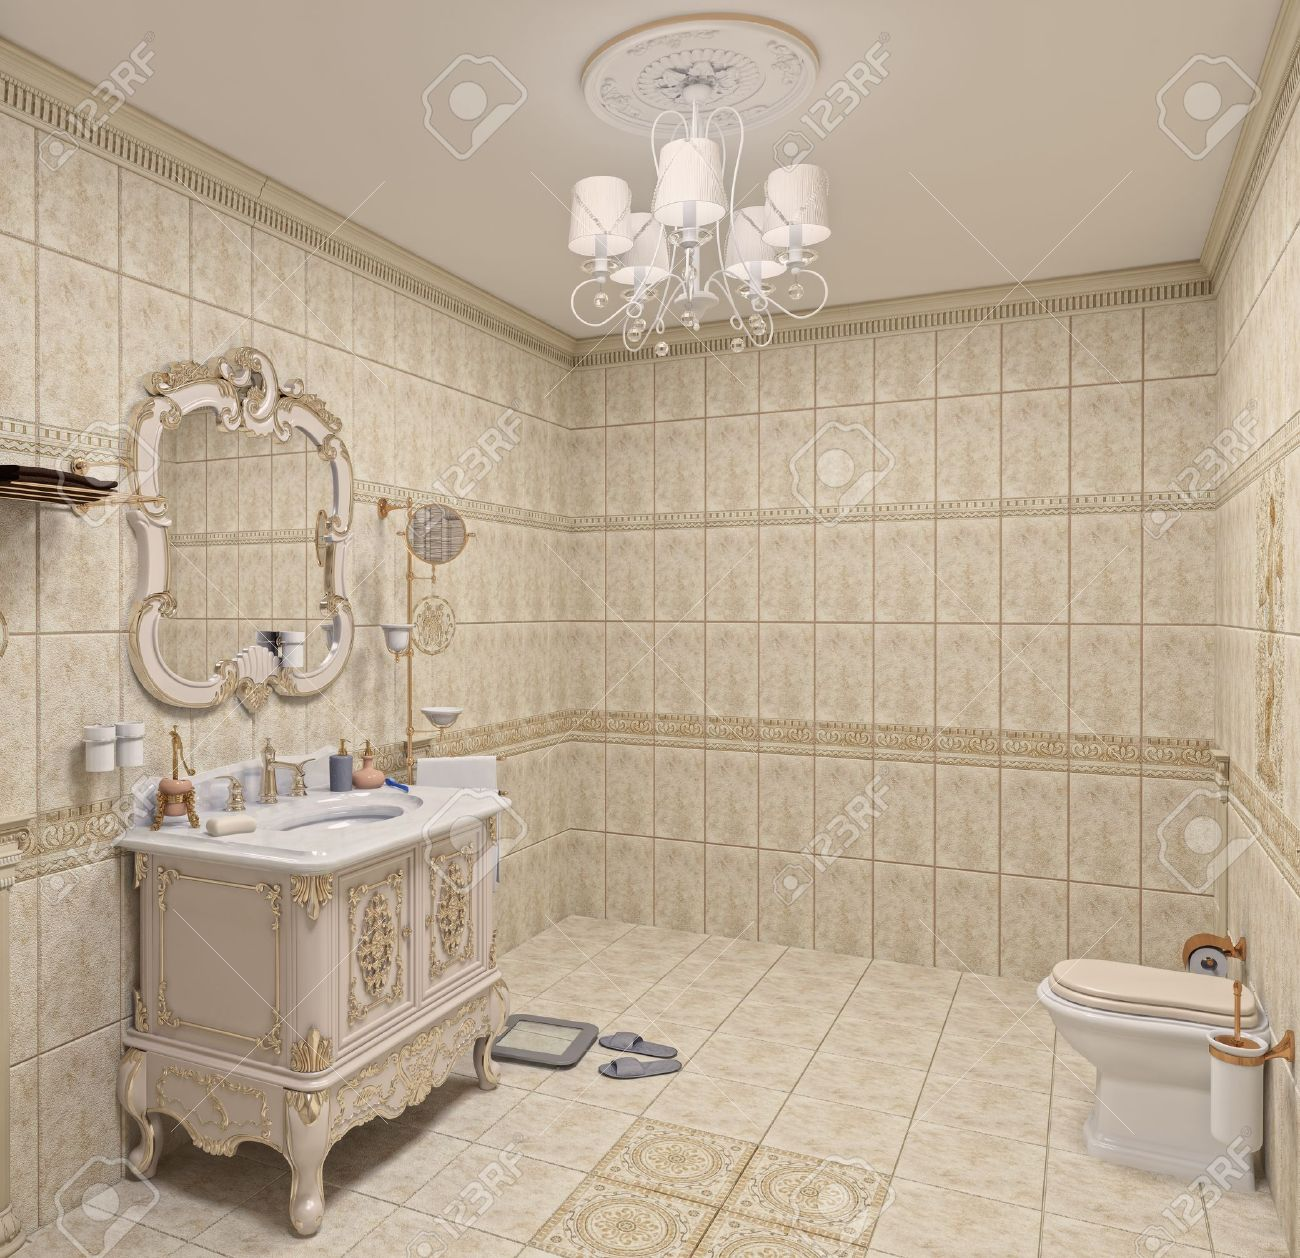 modern bathroom interior with tiles and mirror (3d rendering